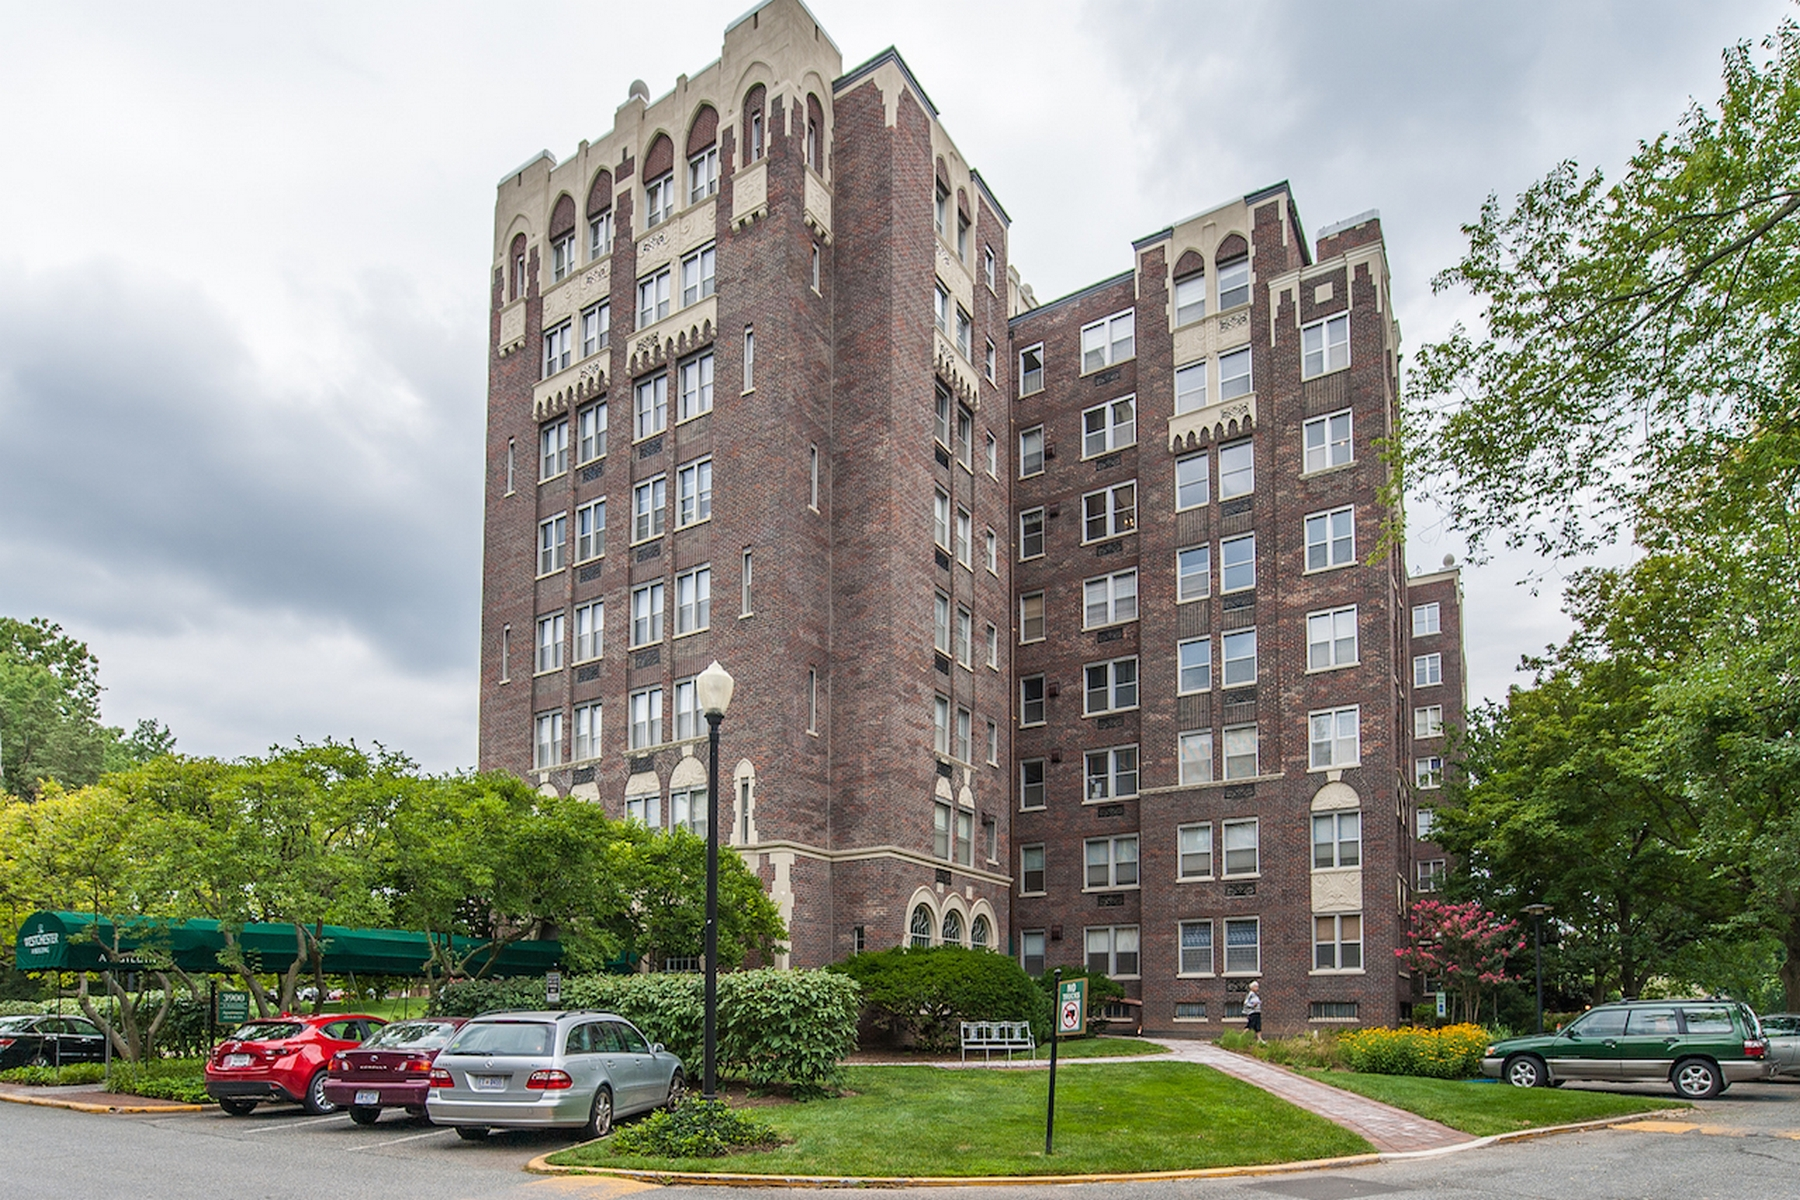 Condominium for Sale at Observatory Circle 3900 Cathedral Avenue Nw 604A Washington, District Of Columbia 20016 United States